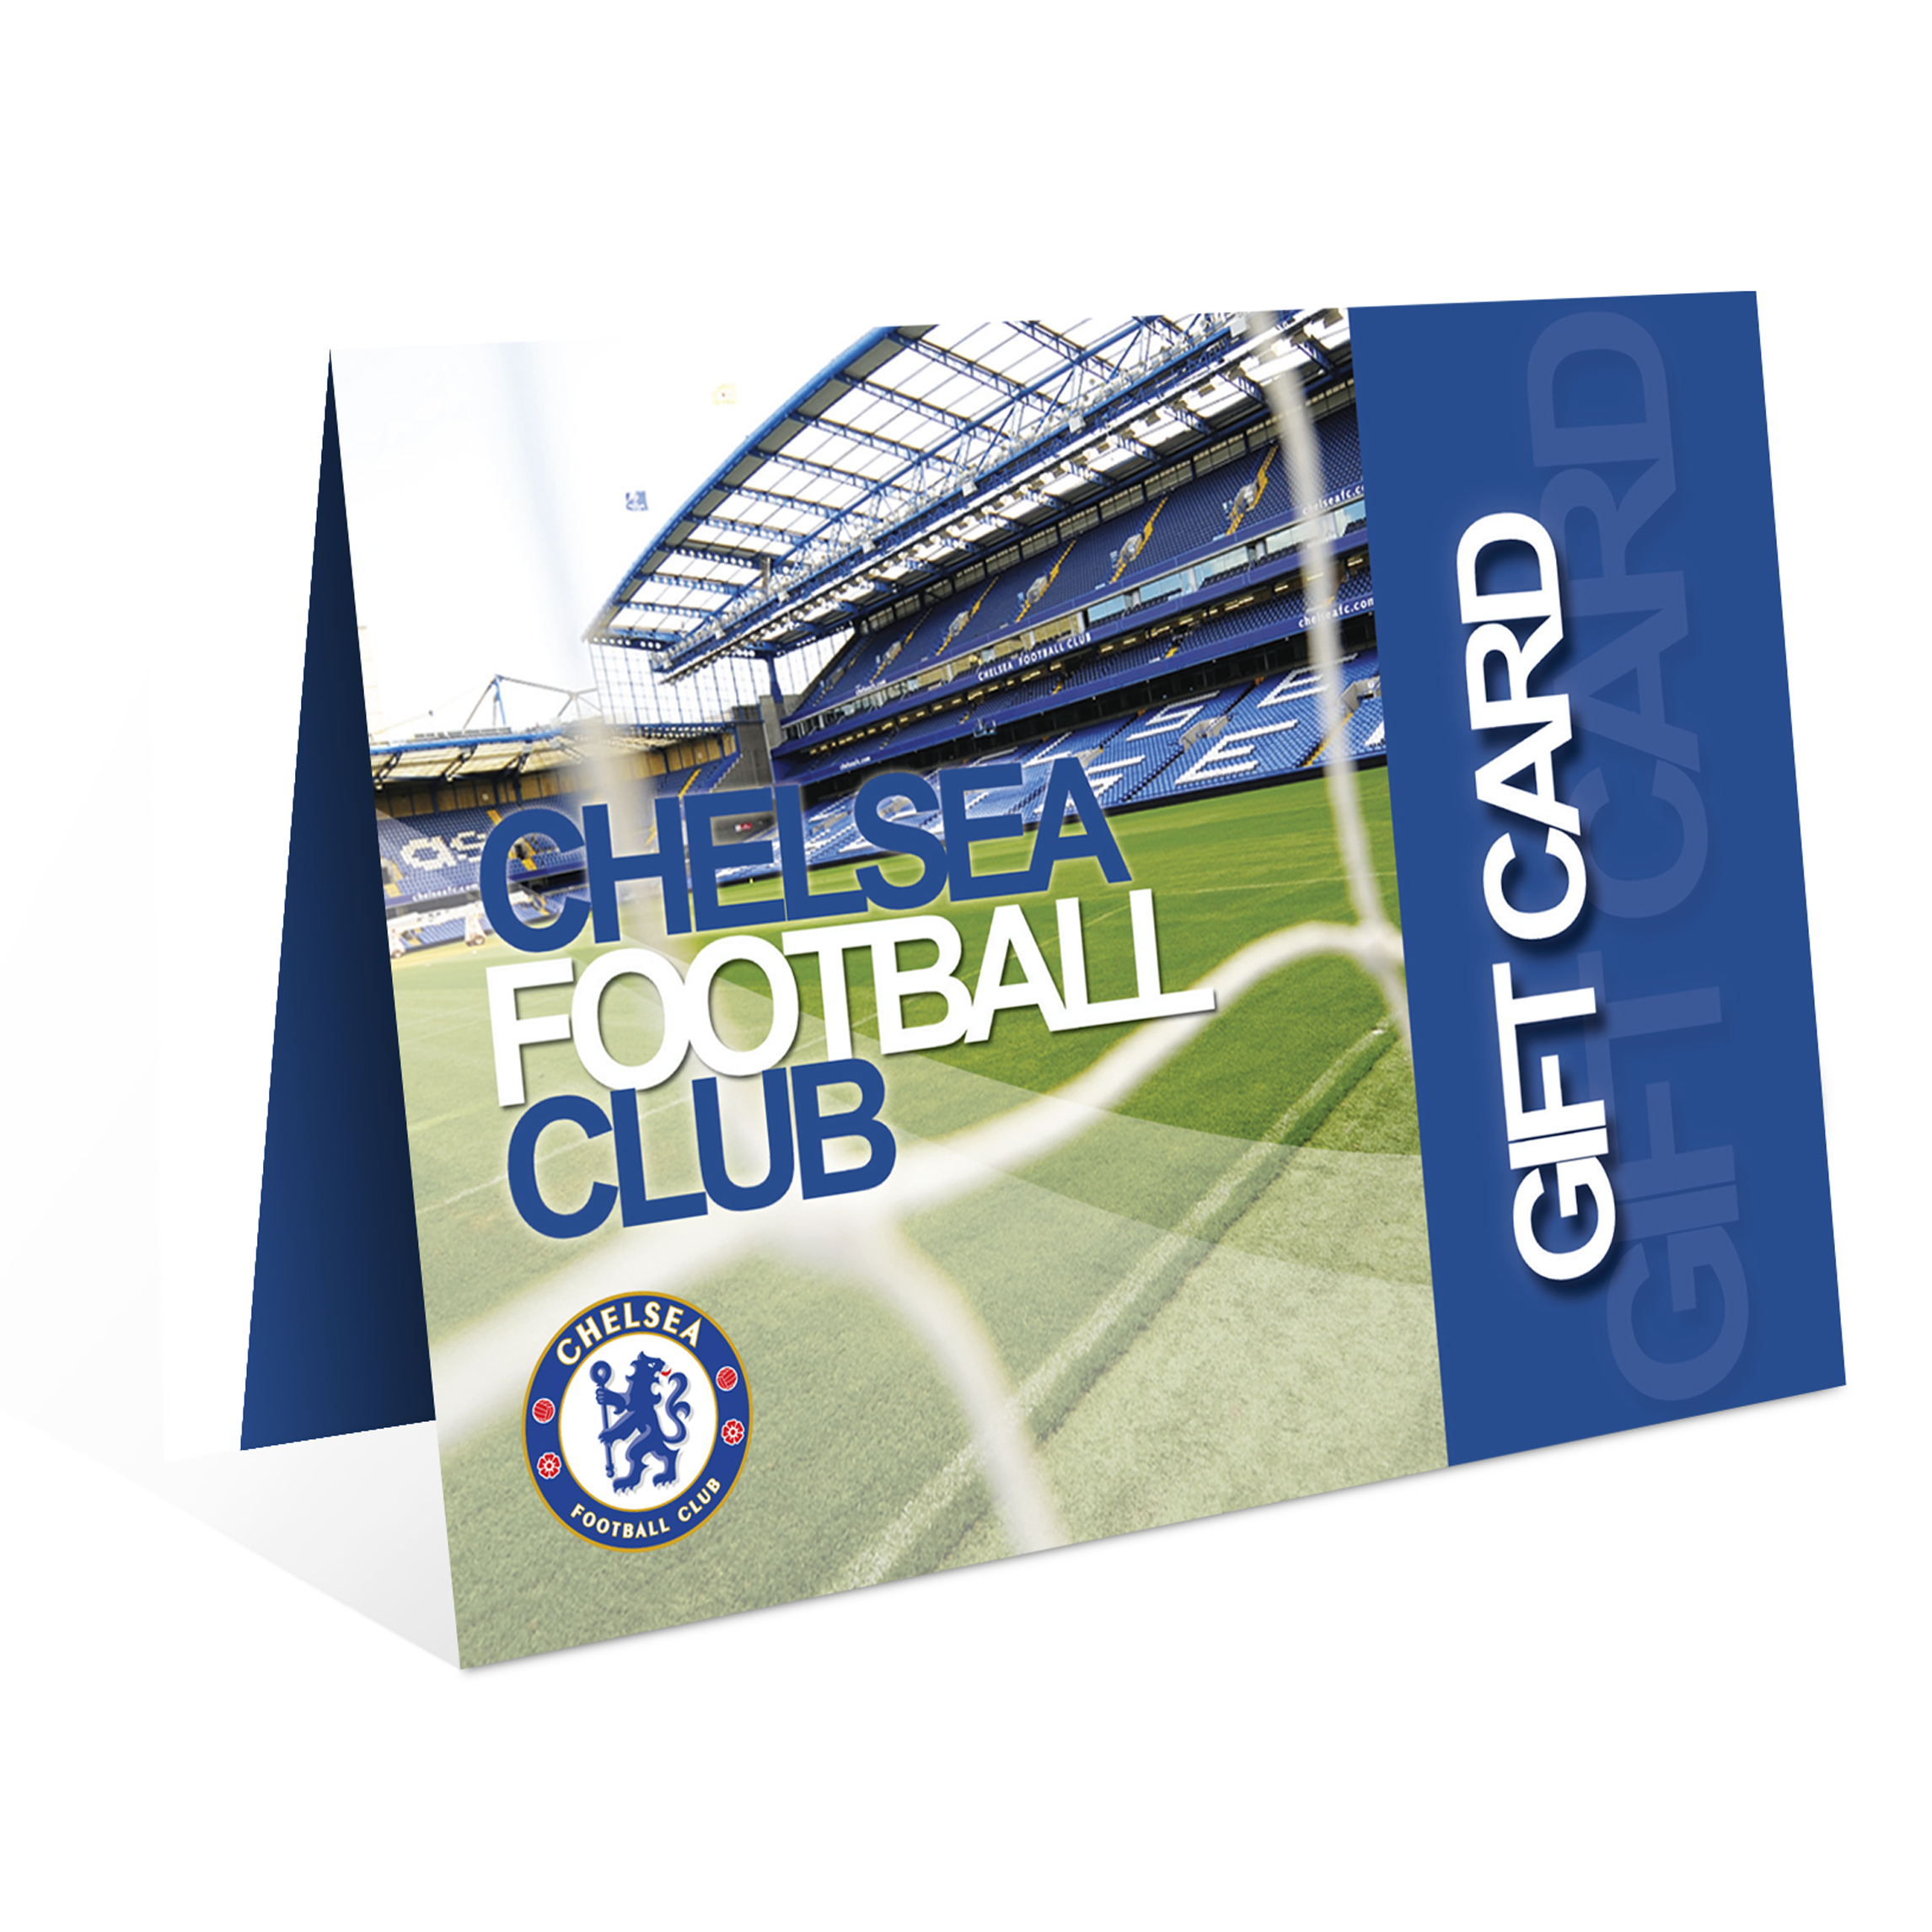 Chelsea Football Club Gift Card - Pitch - Value £100